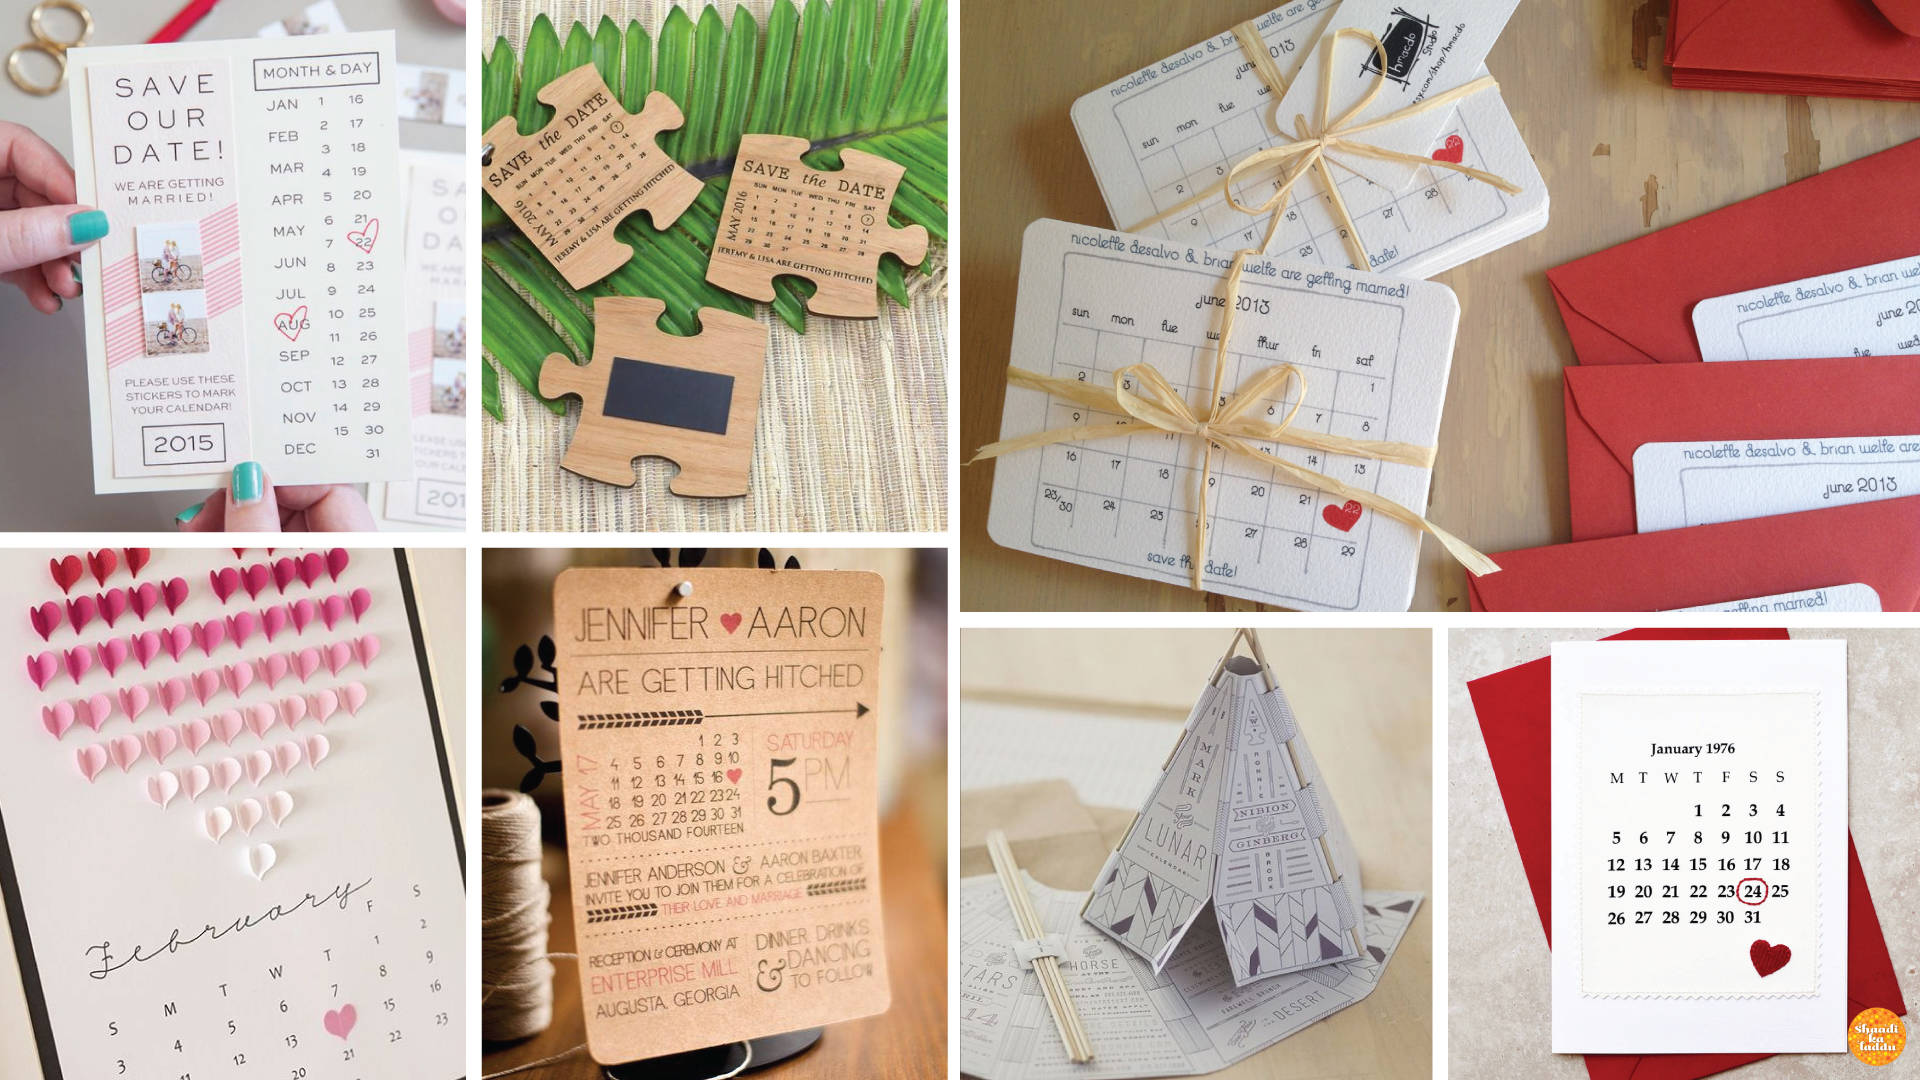 Personalized Calendar Wedding Invitations for all year round celebrations.